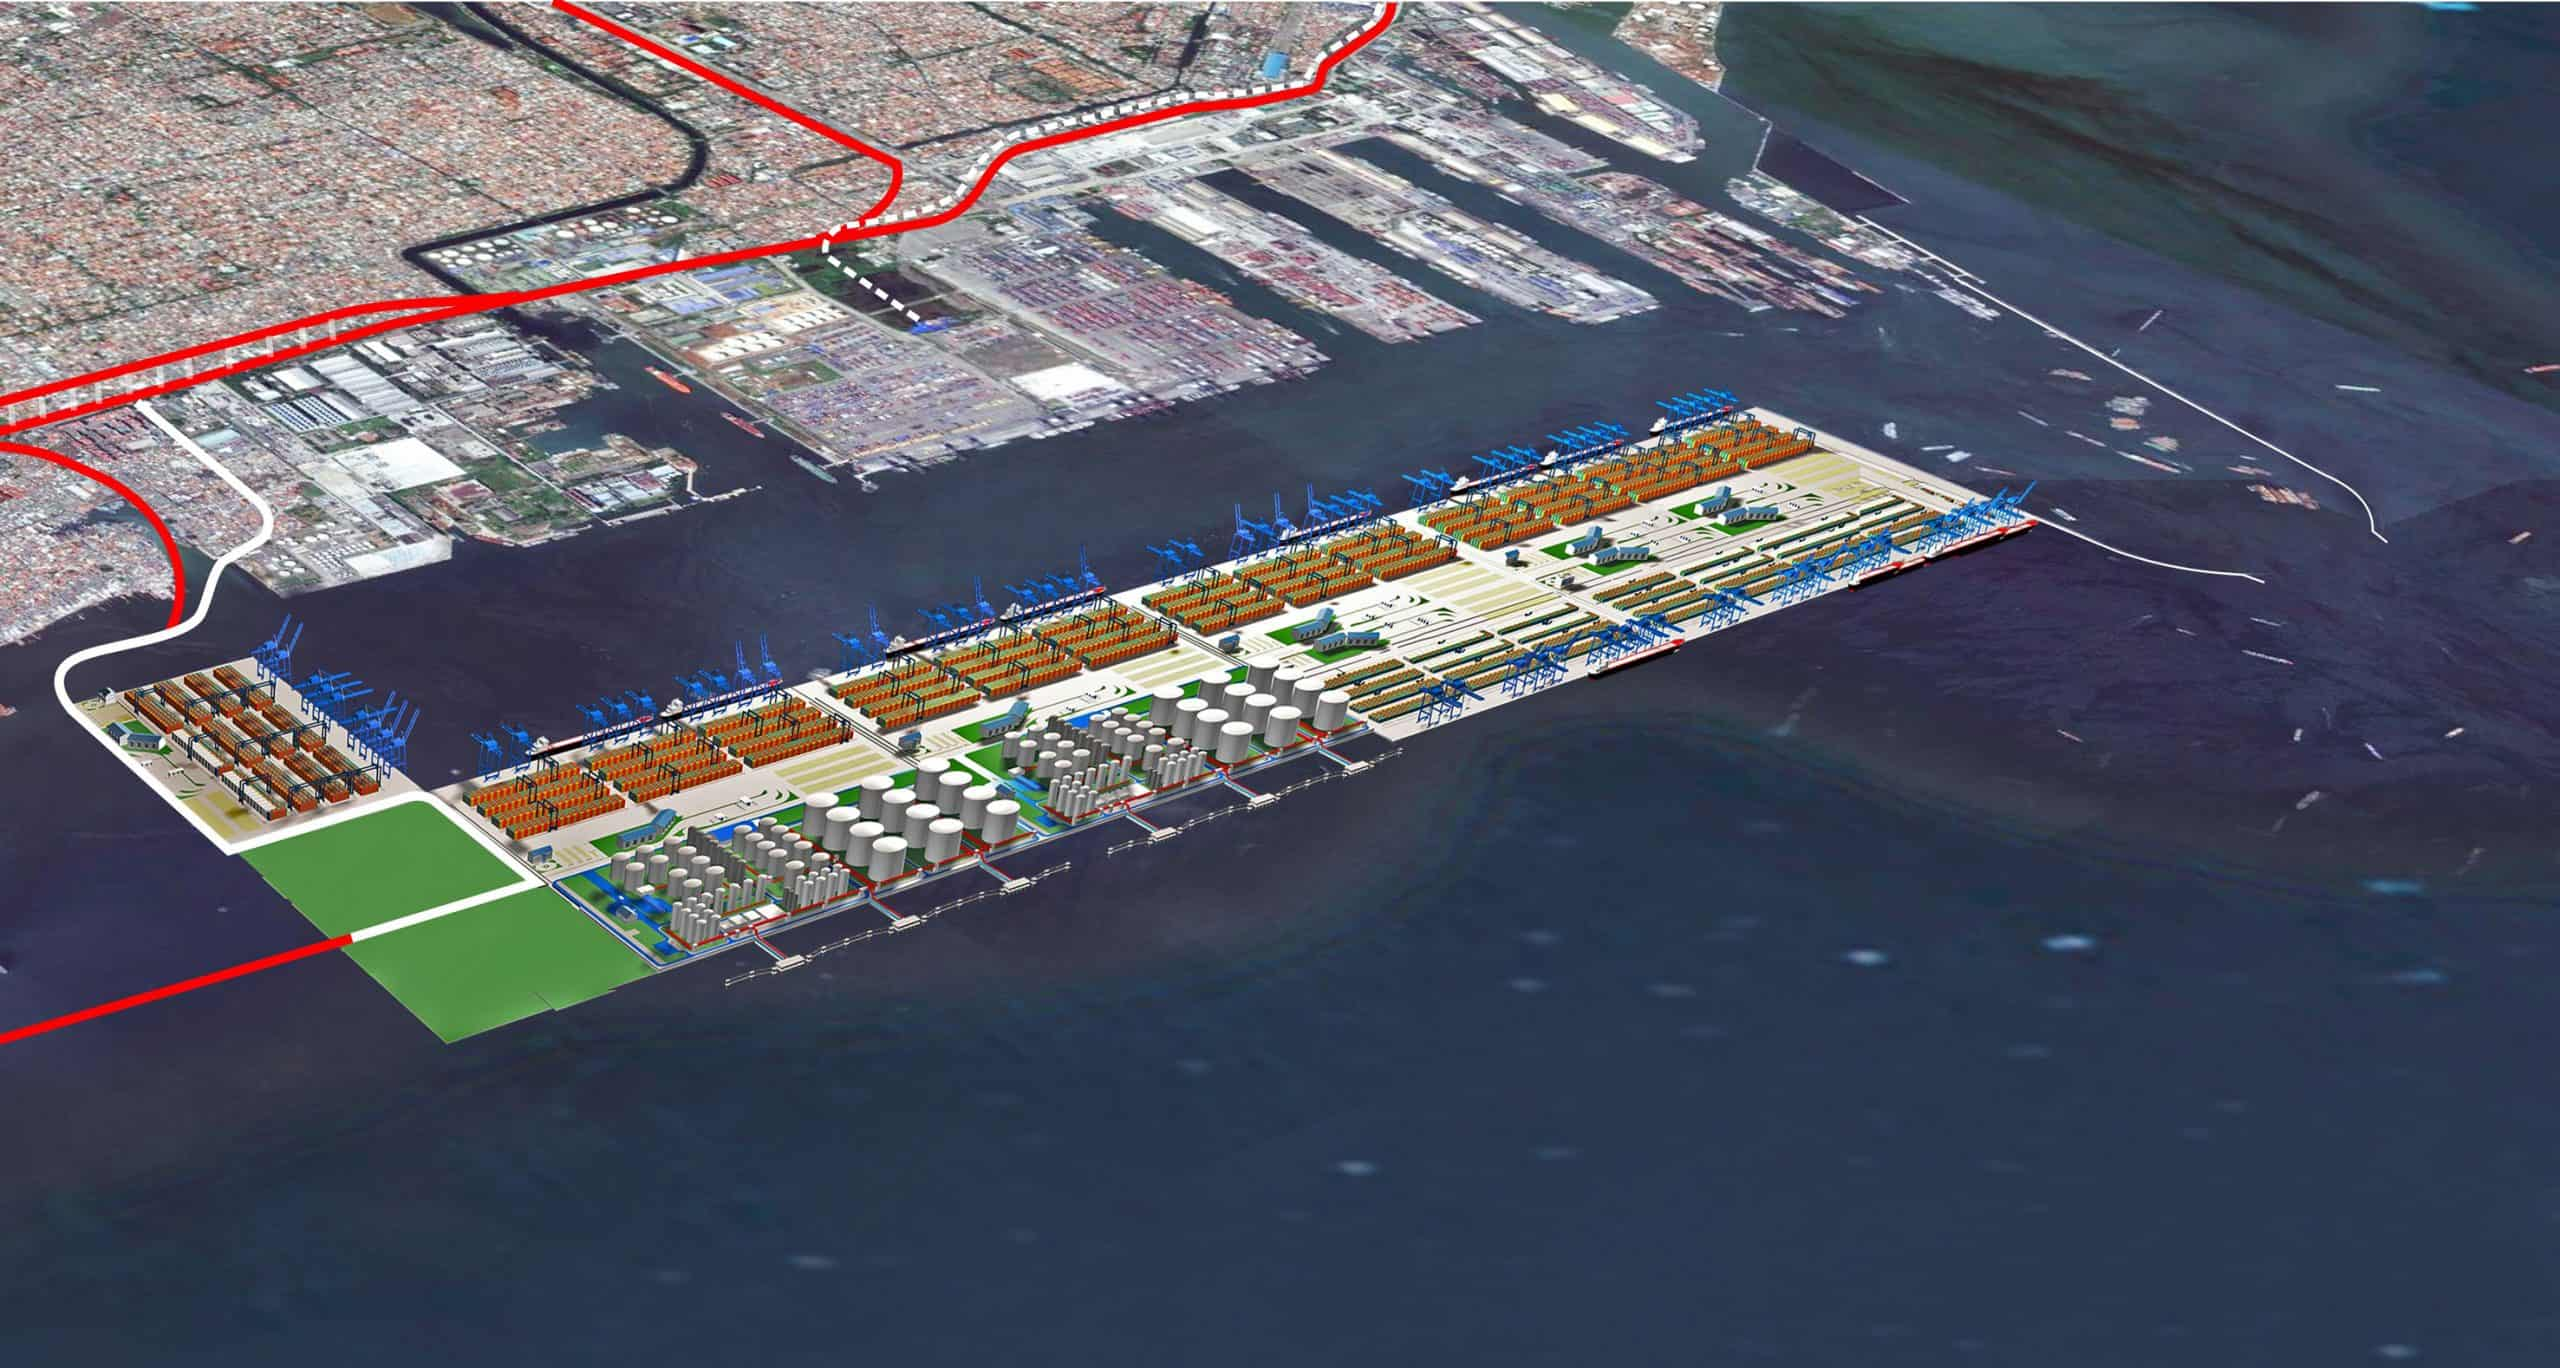 New container terminal set to be built at Tanjung Priok Port